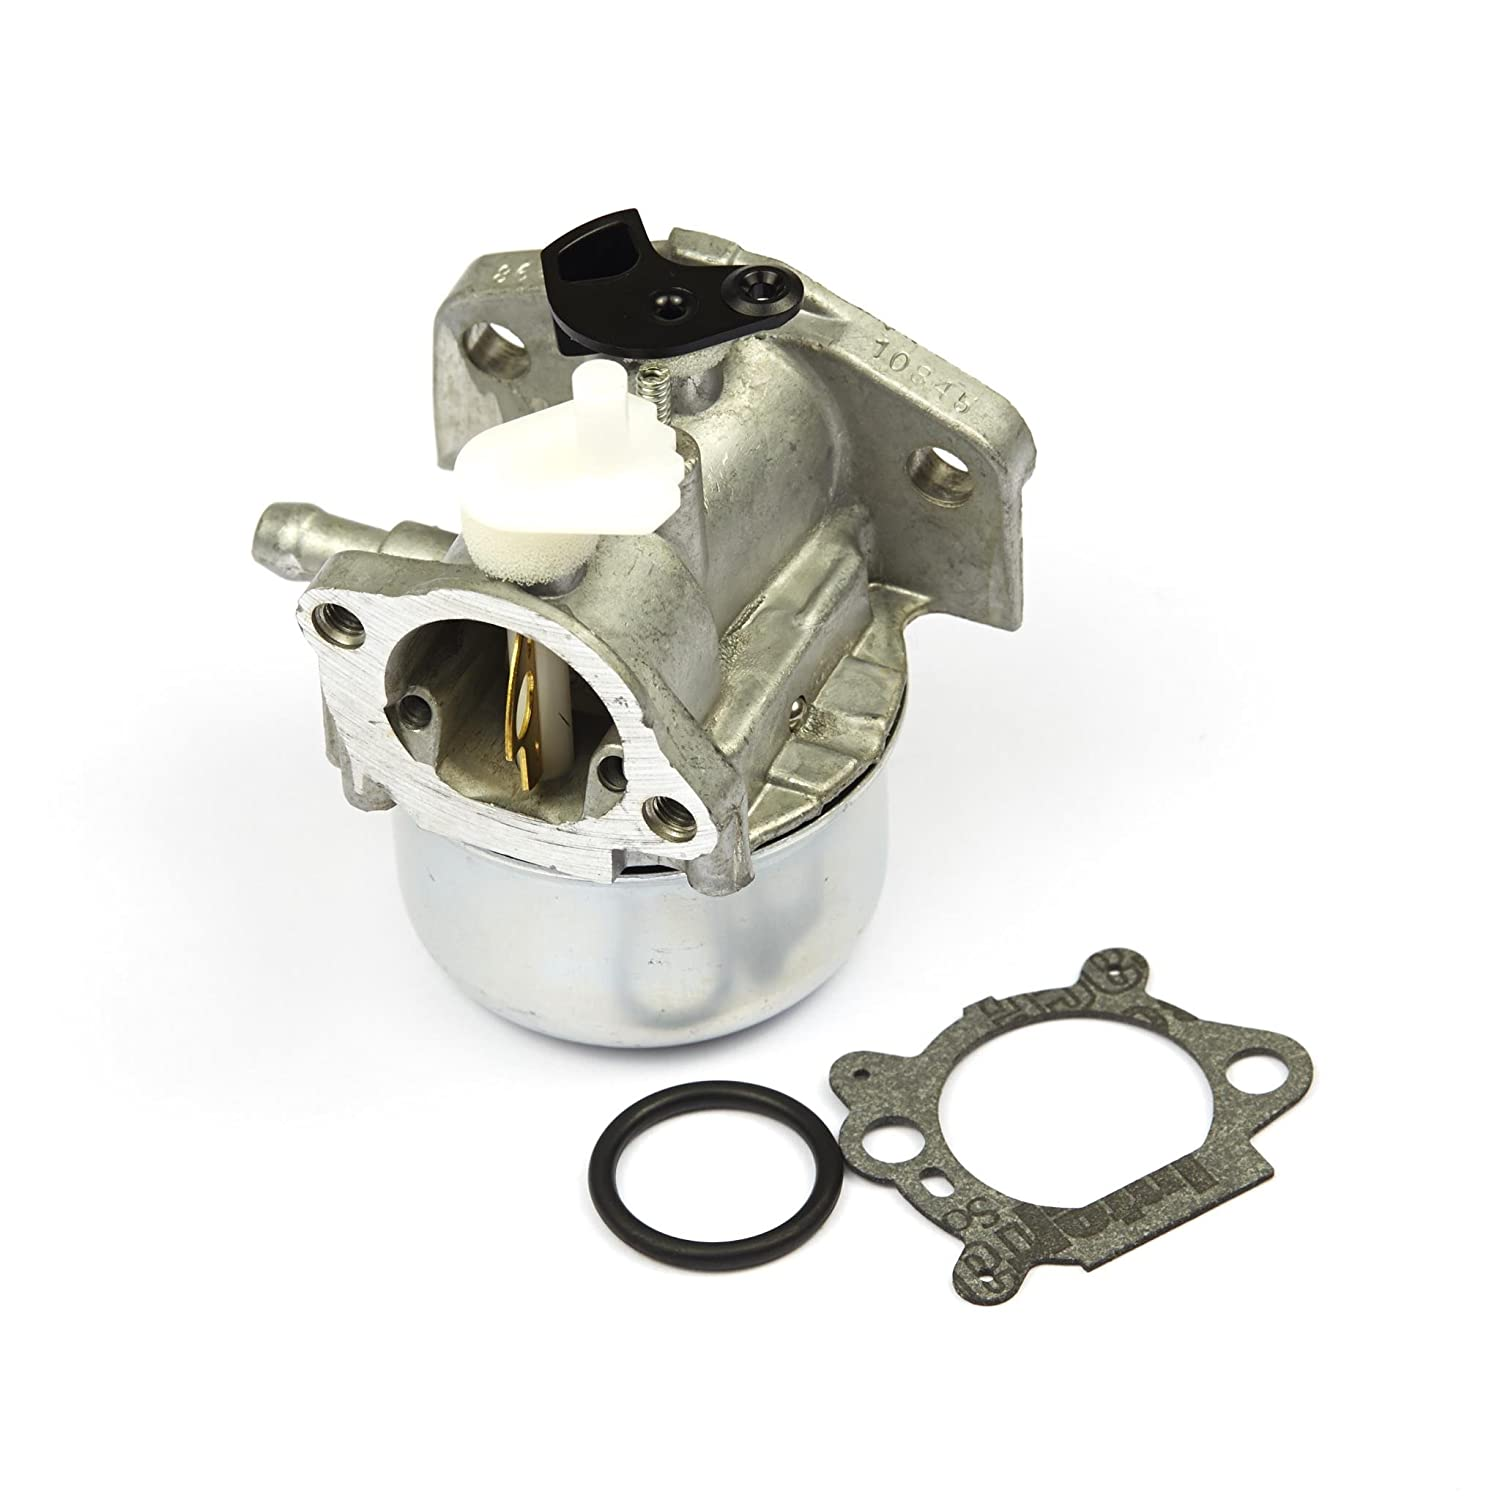 Briggs & Stratton 799869 Carburetor Replaces 792253